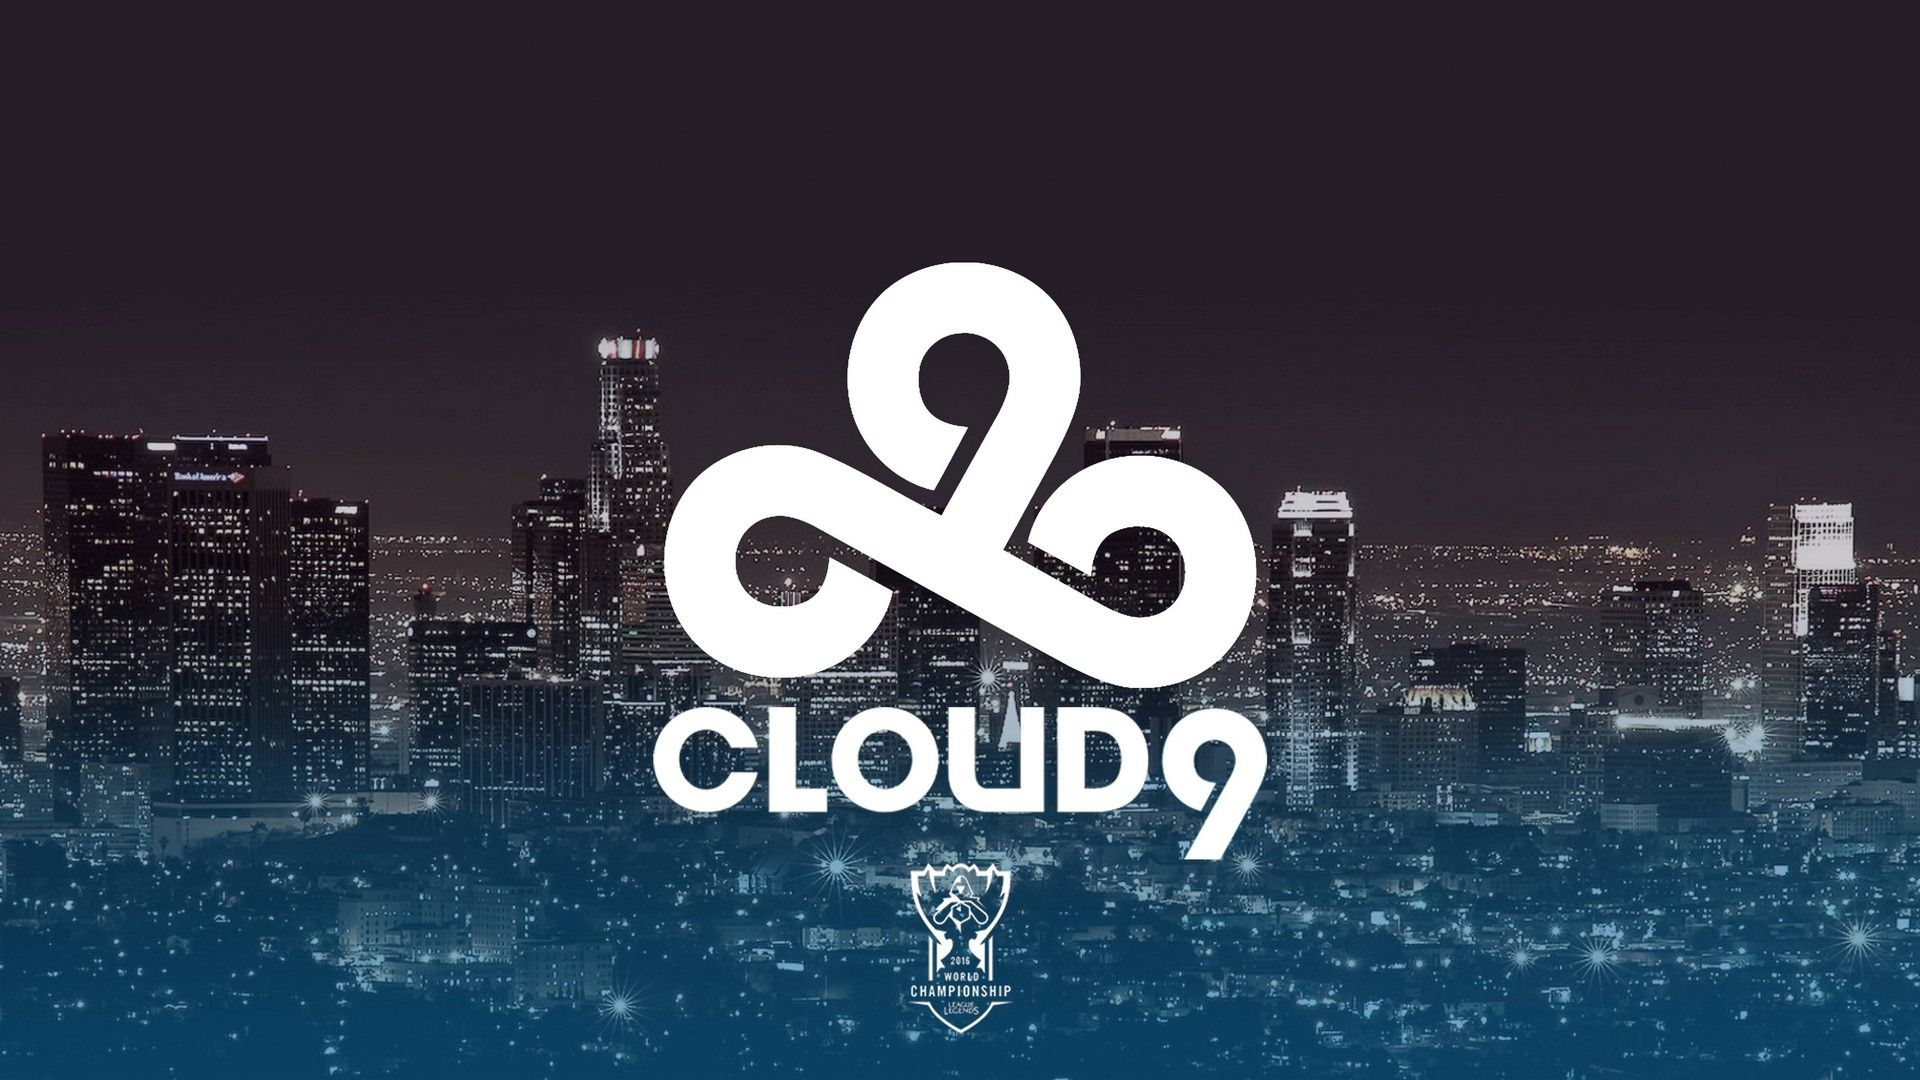 Cloud 9 Games Wallpaper Hd Cloud 9 Best Wallpaper Hd